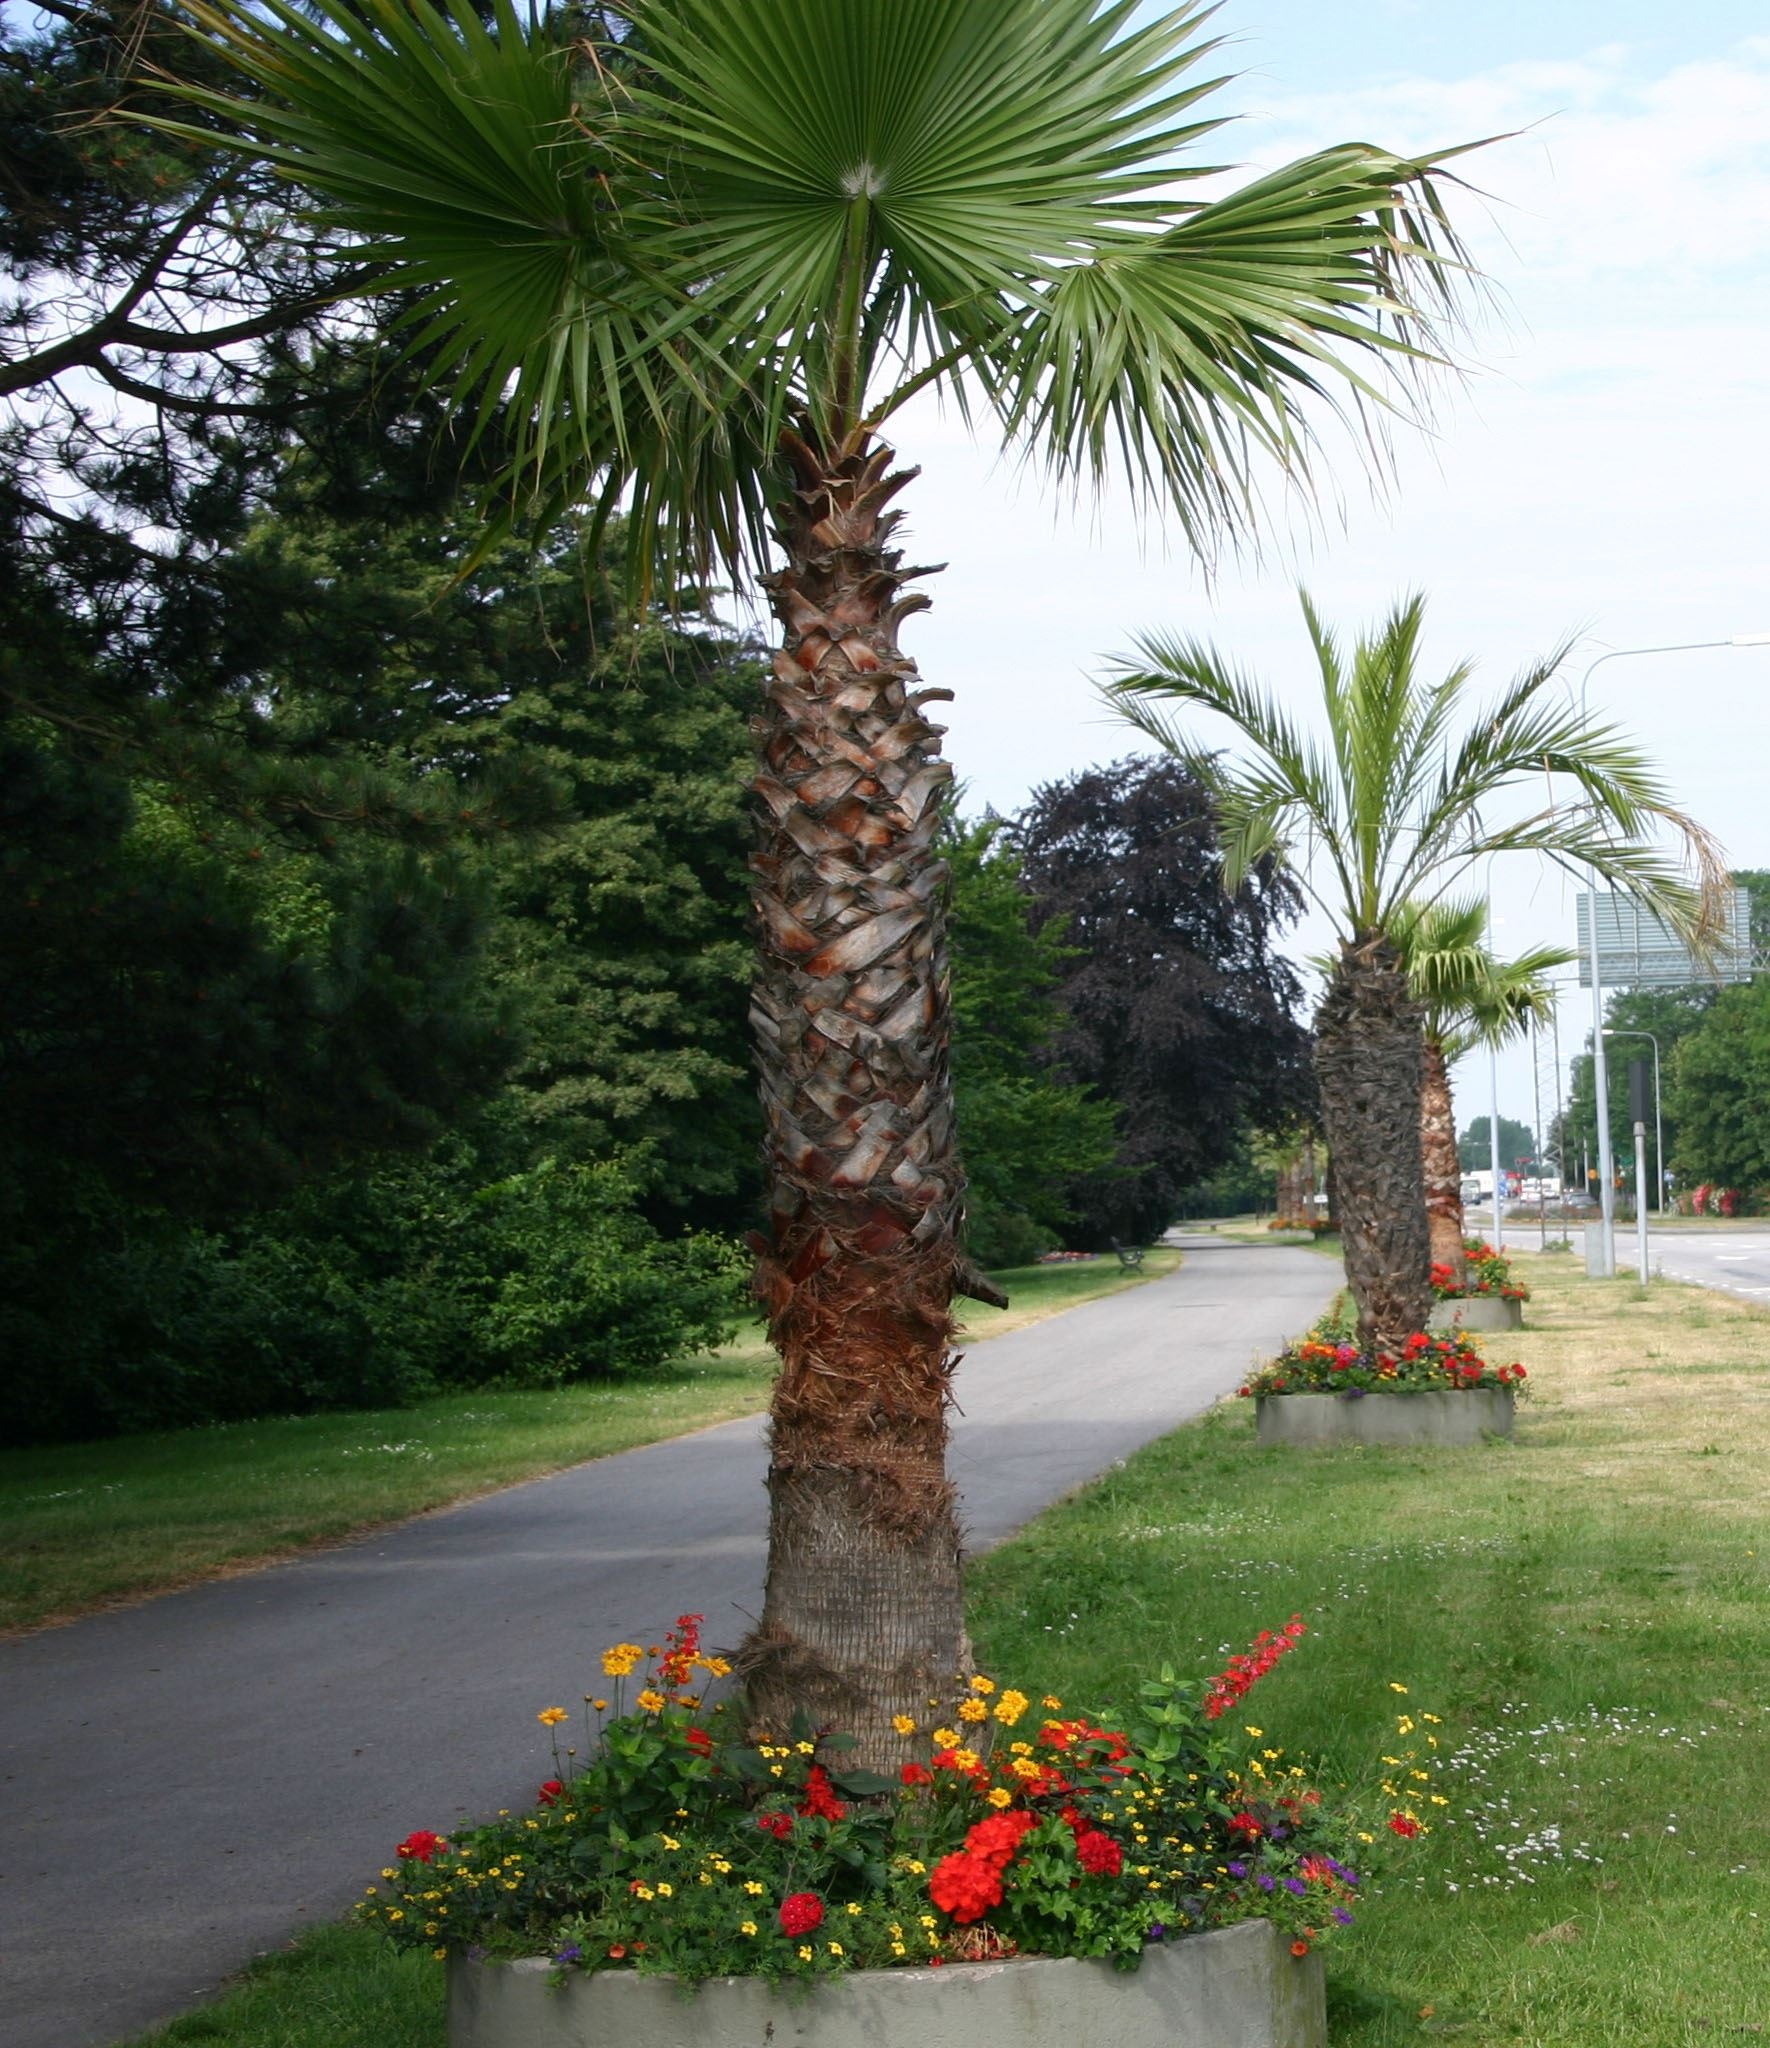 The palm trees in Trelleborg